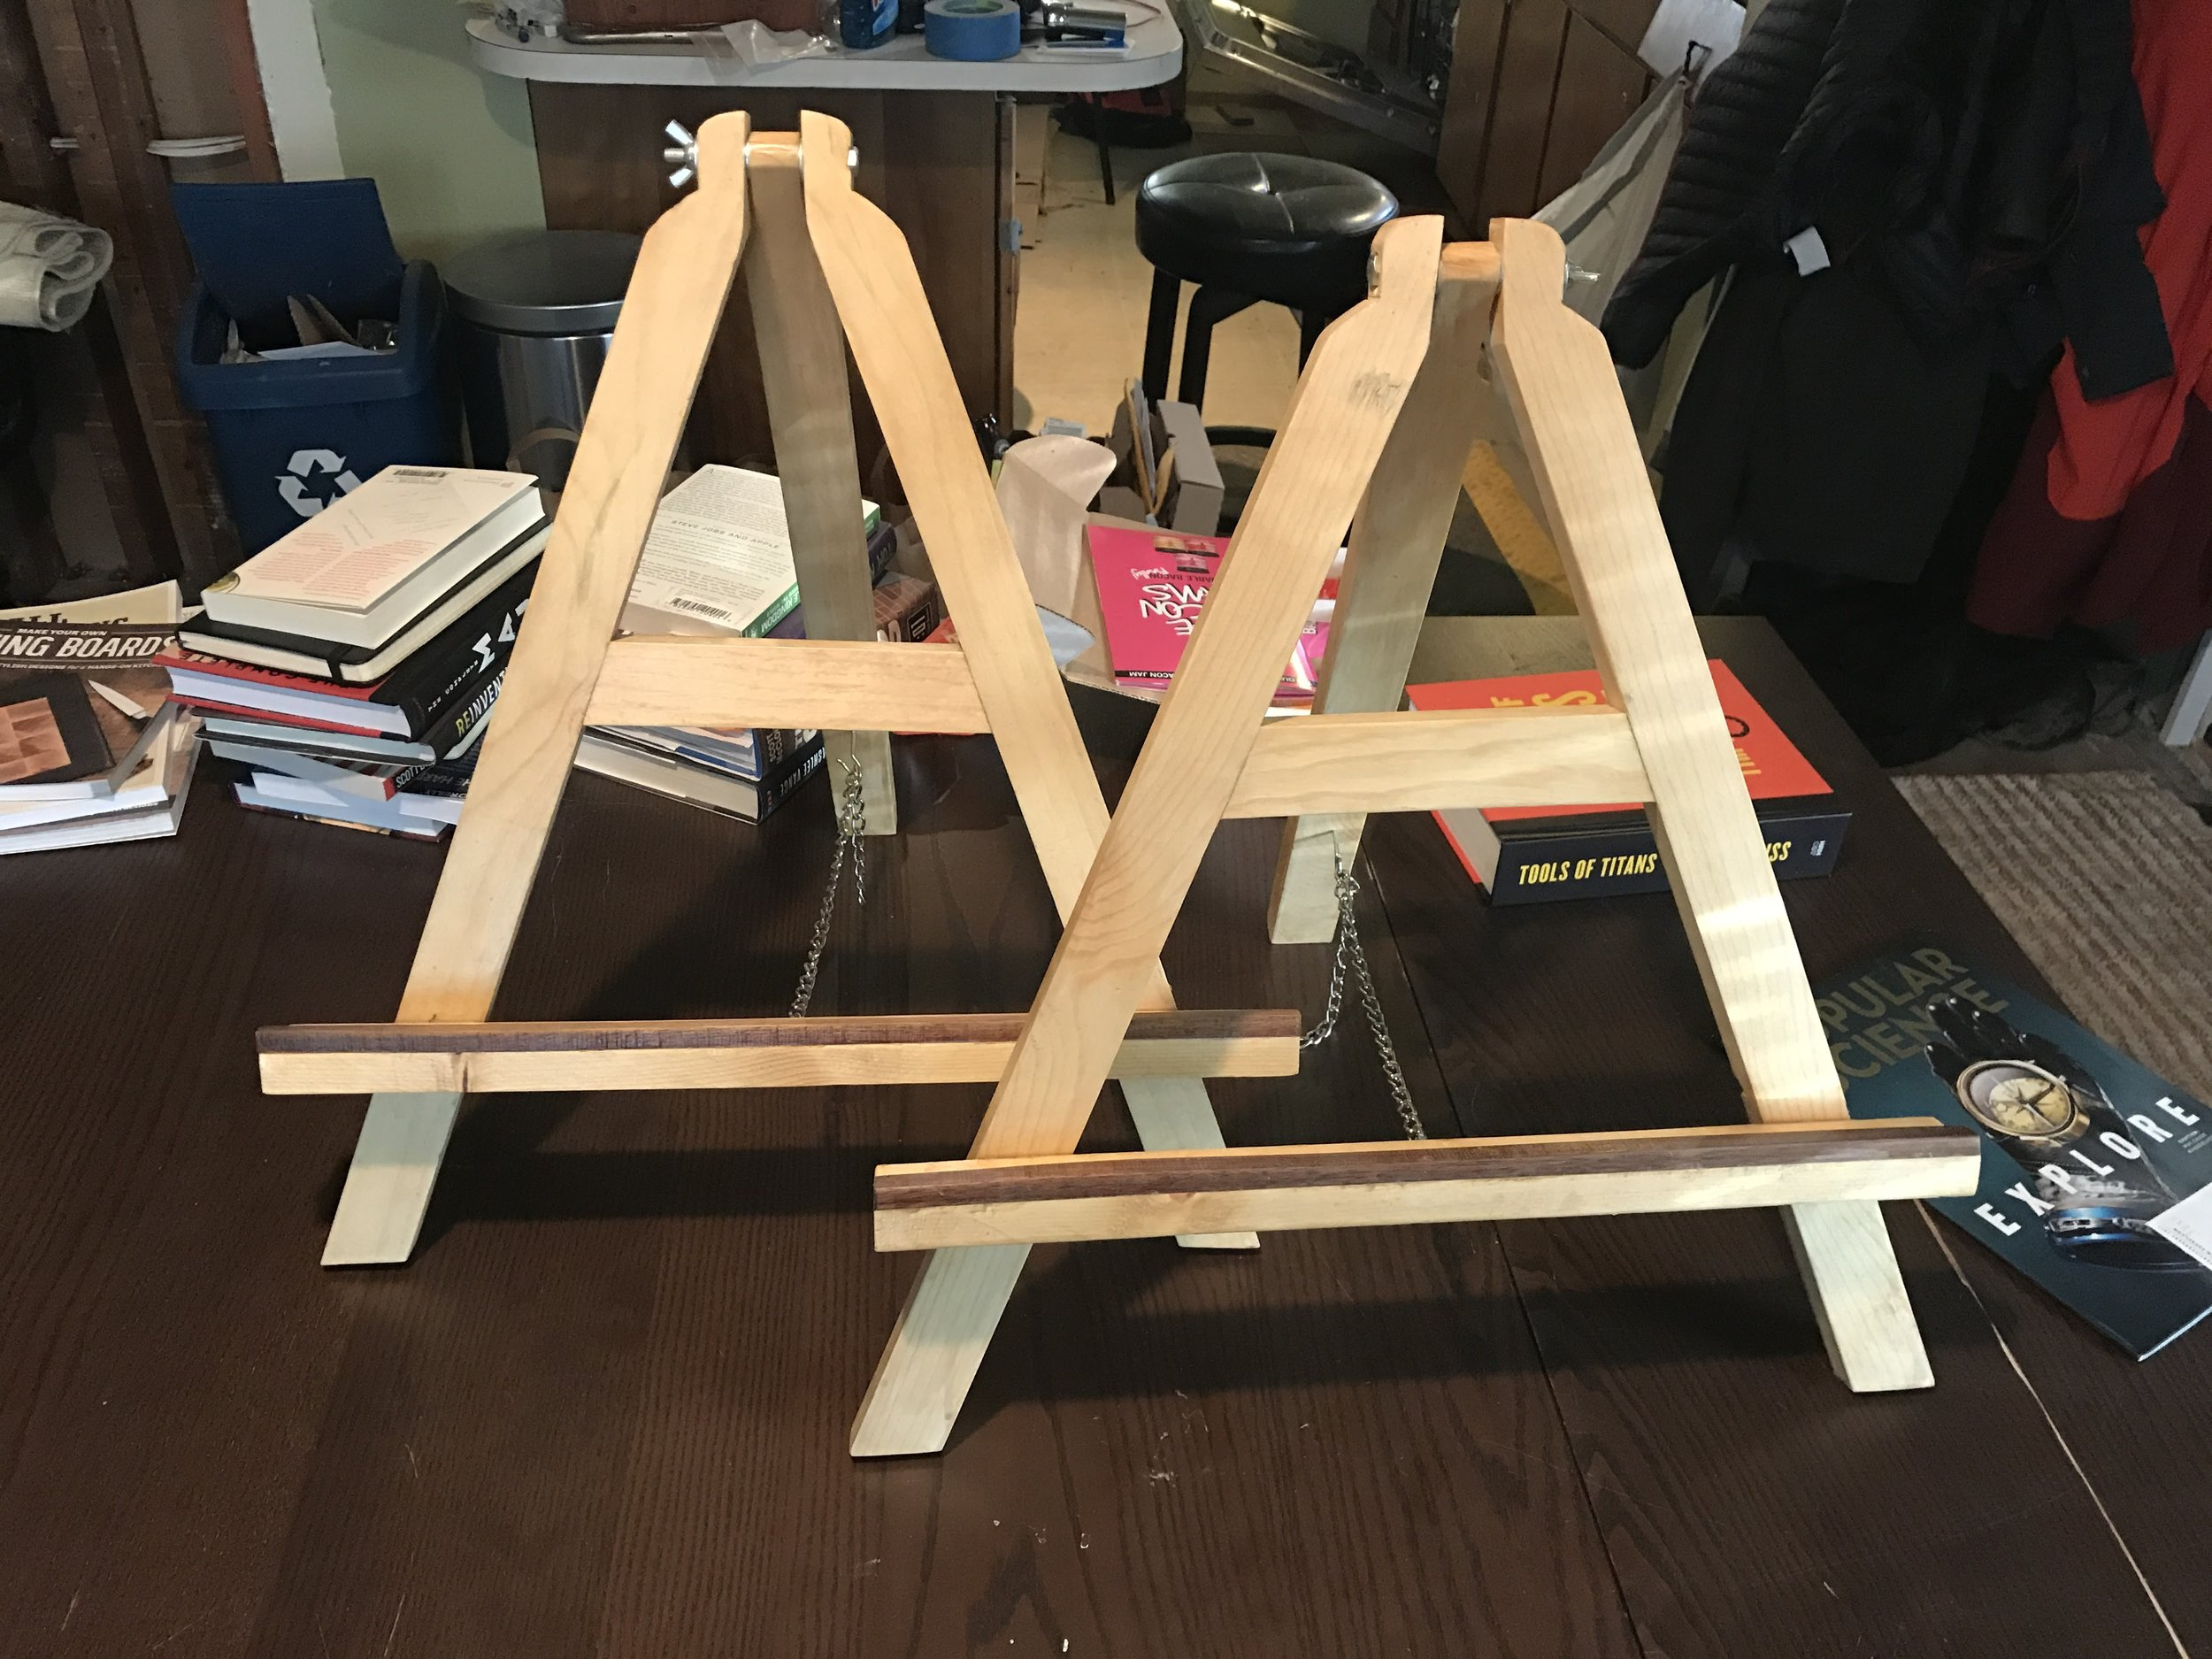 A detail of the easels I made as Christmas presents this year for my niece and girlfriend.